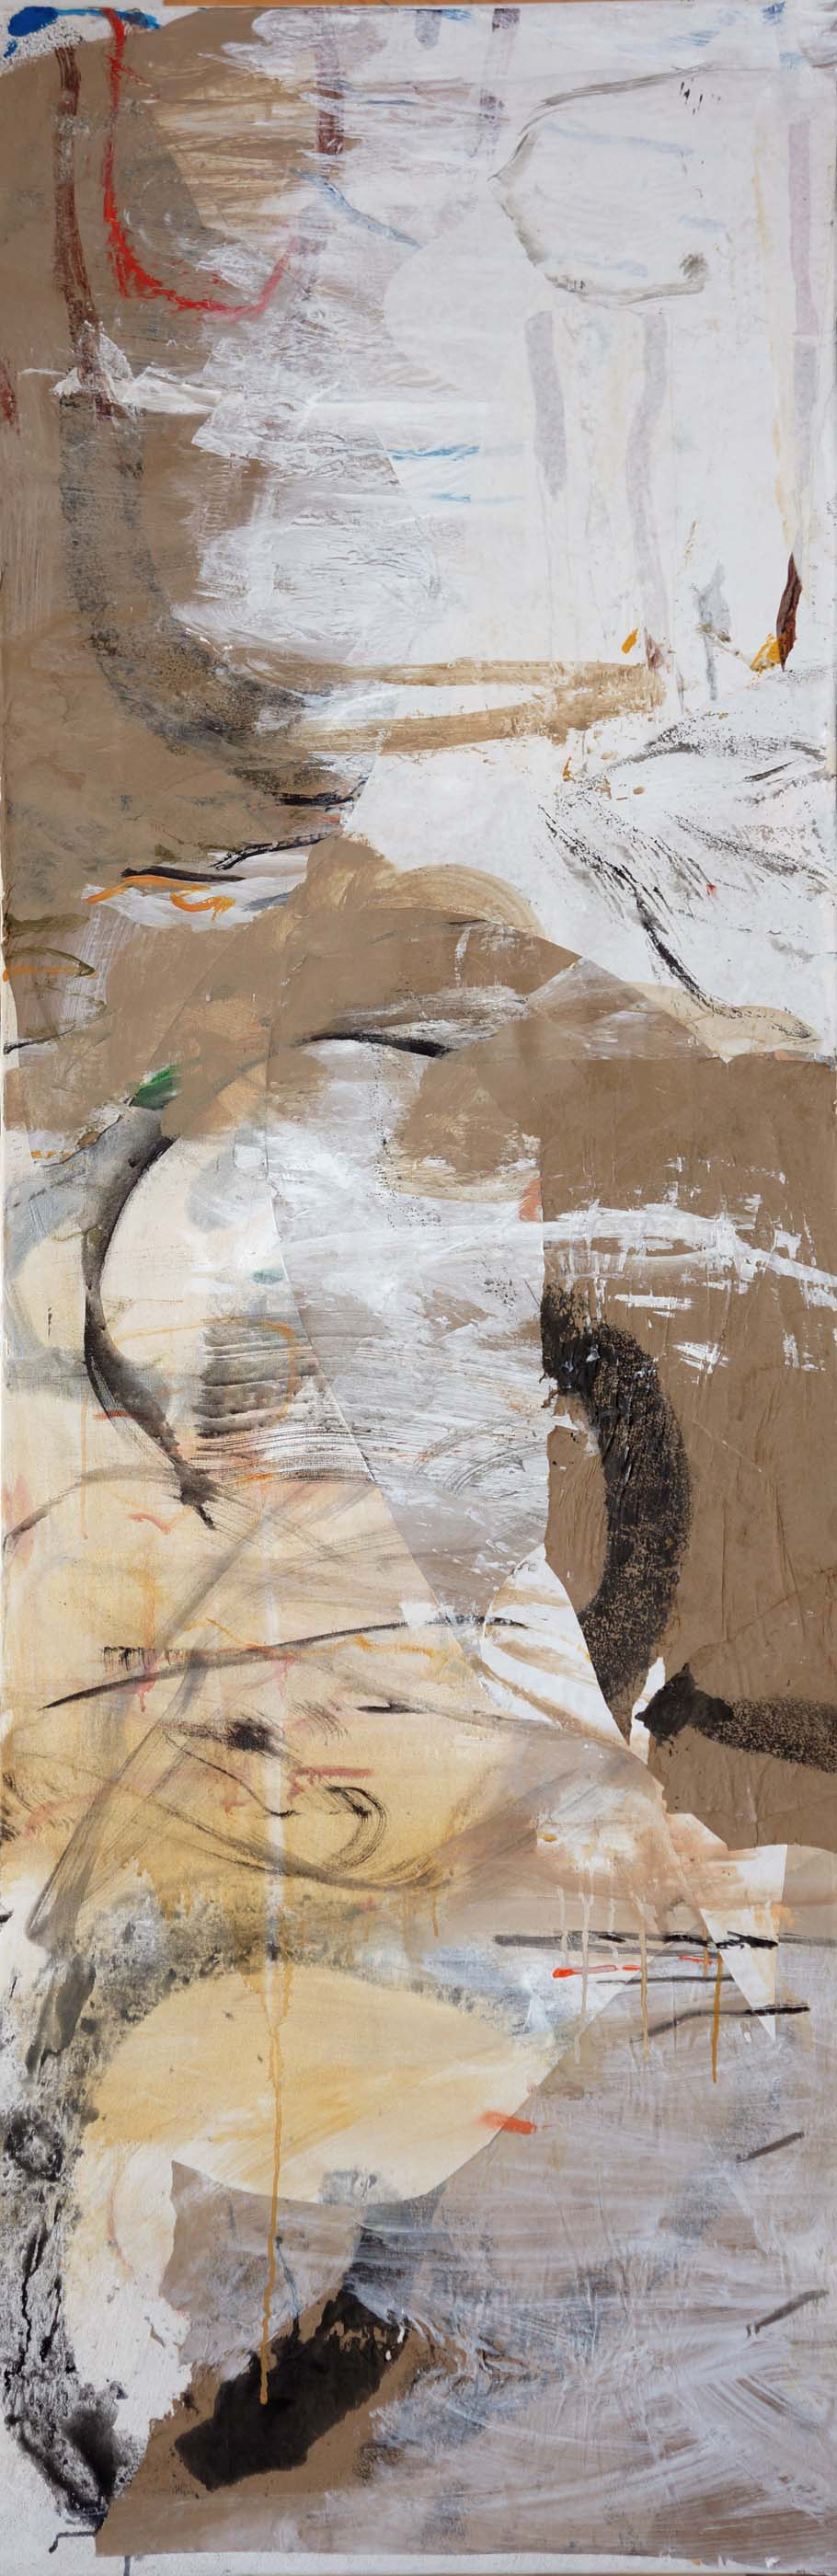 "autumn creek    78x25.5""  oil & collaged paper on canvas"